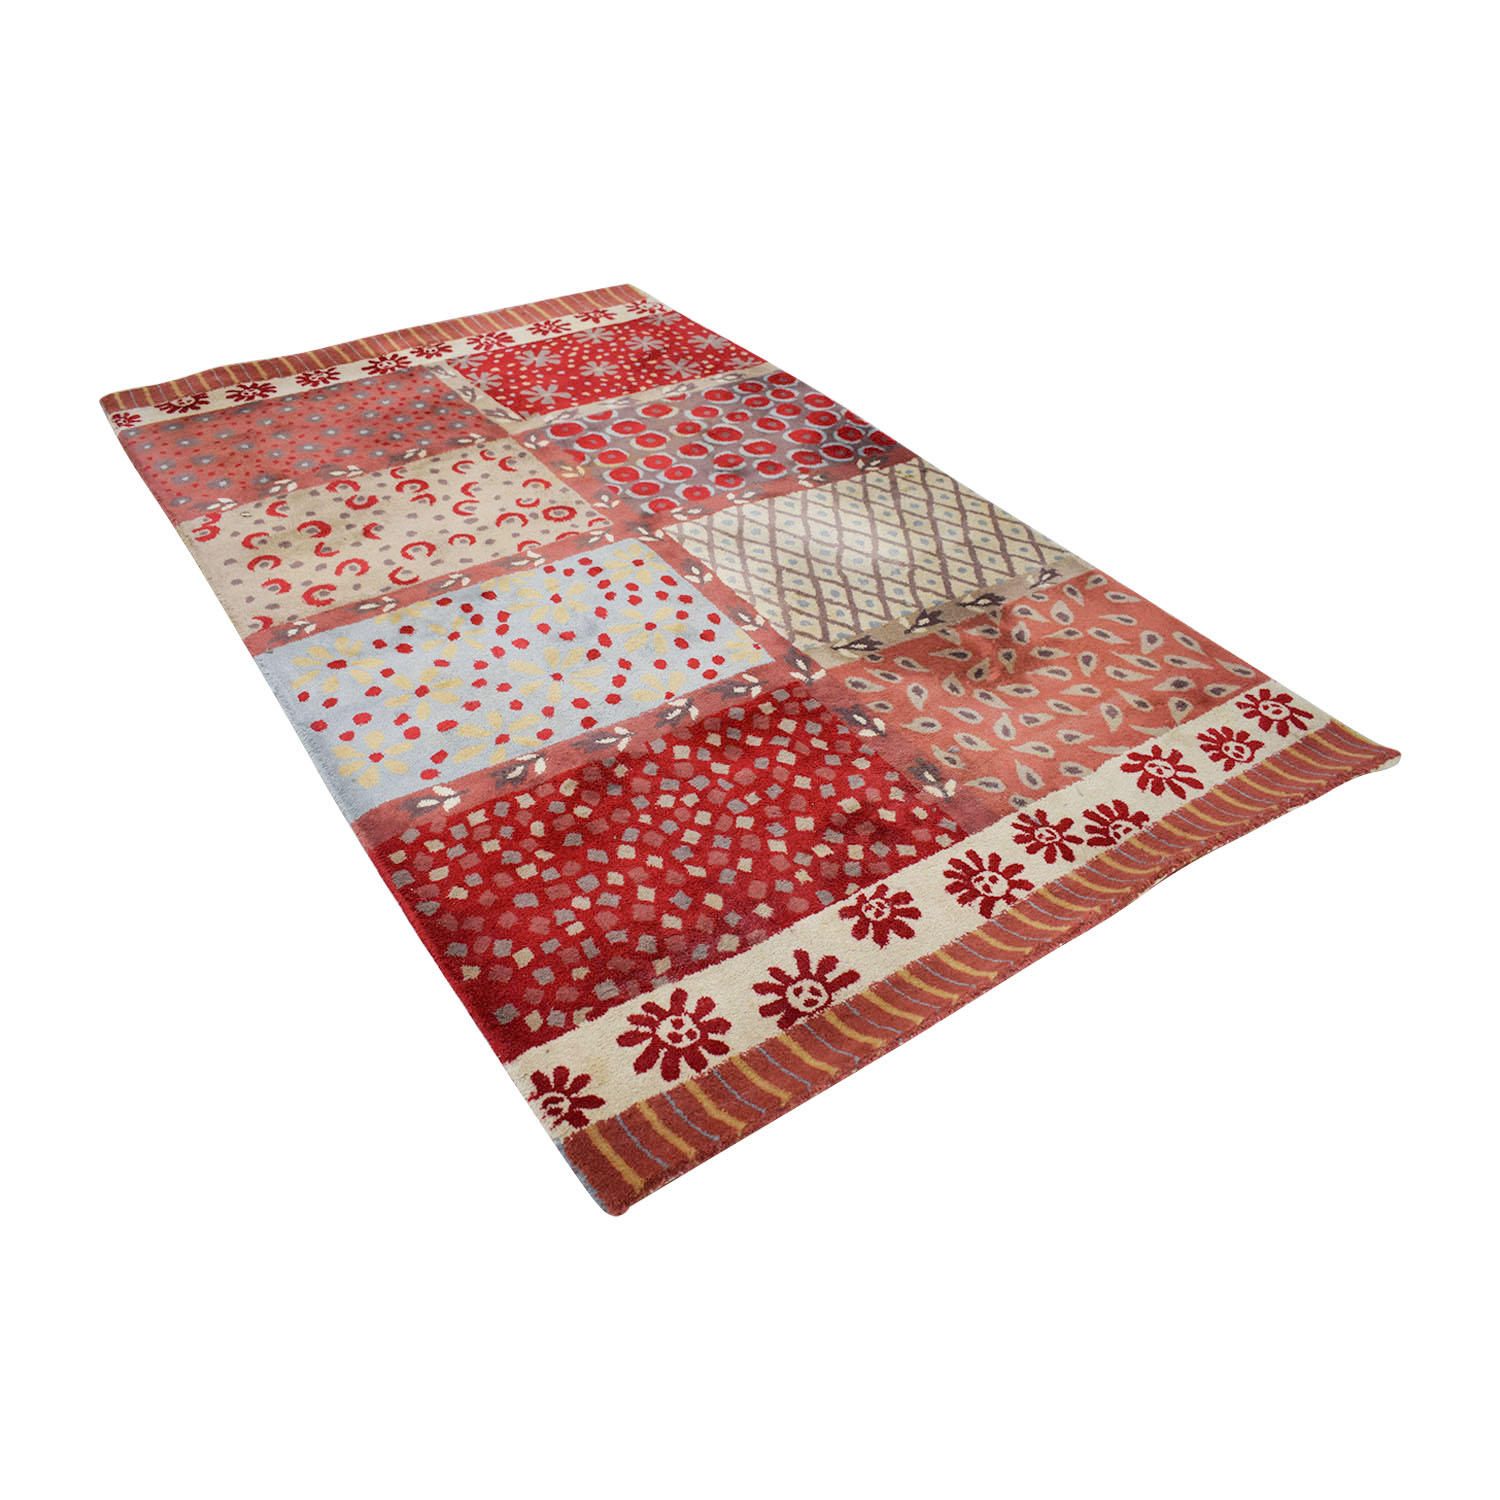 shop Pottery Barn Red Multi-Colored Rug Pottery Barn